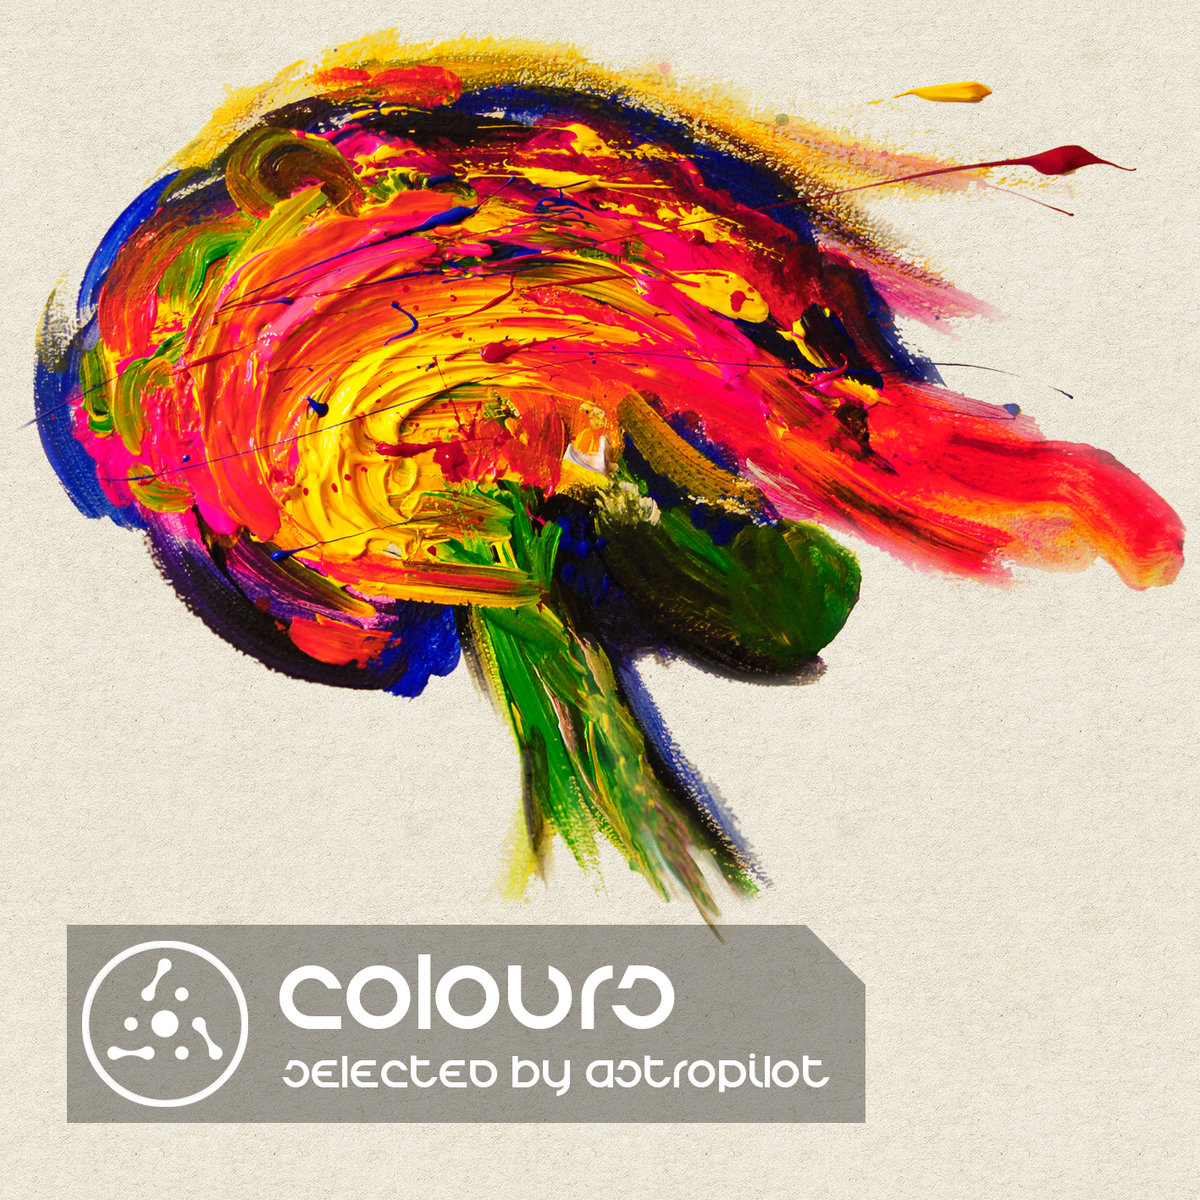 Erot - Snowdrop (Galanthus Edit) @ 'Various Artists - Colours' album (electronic, ambient)